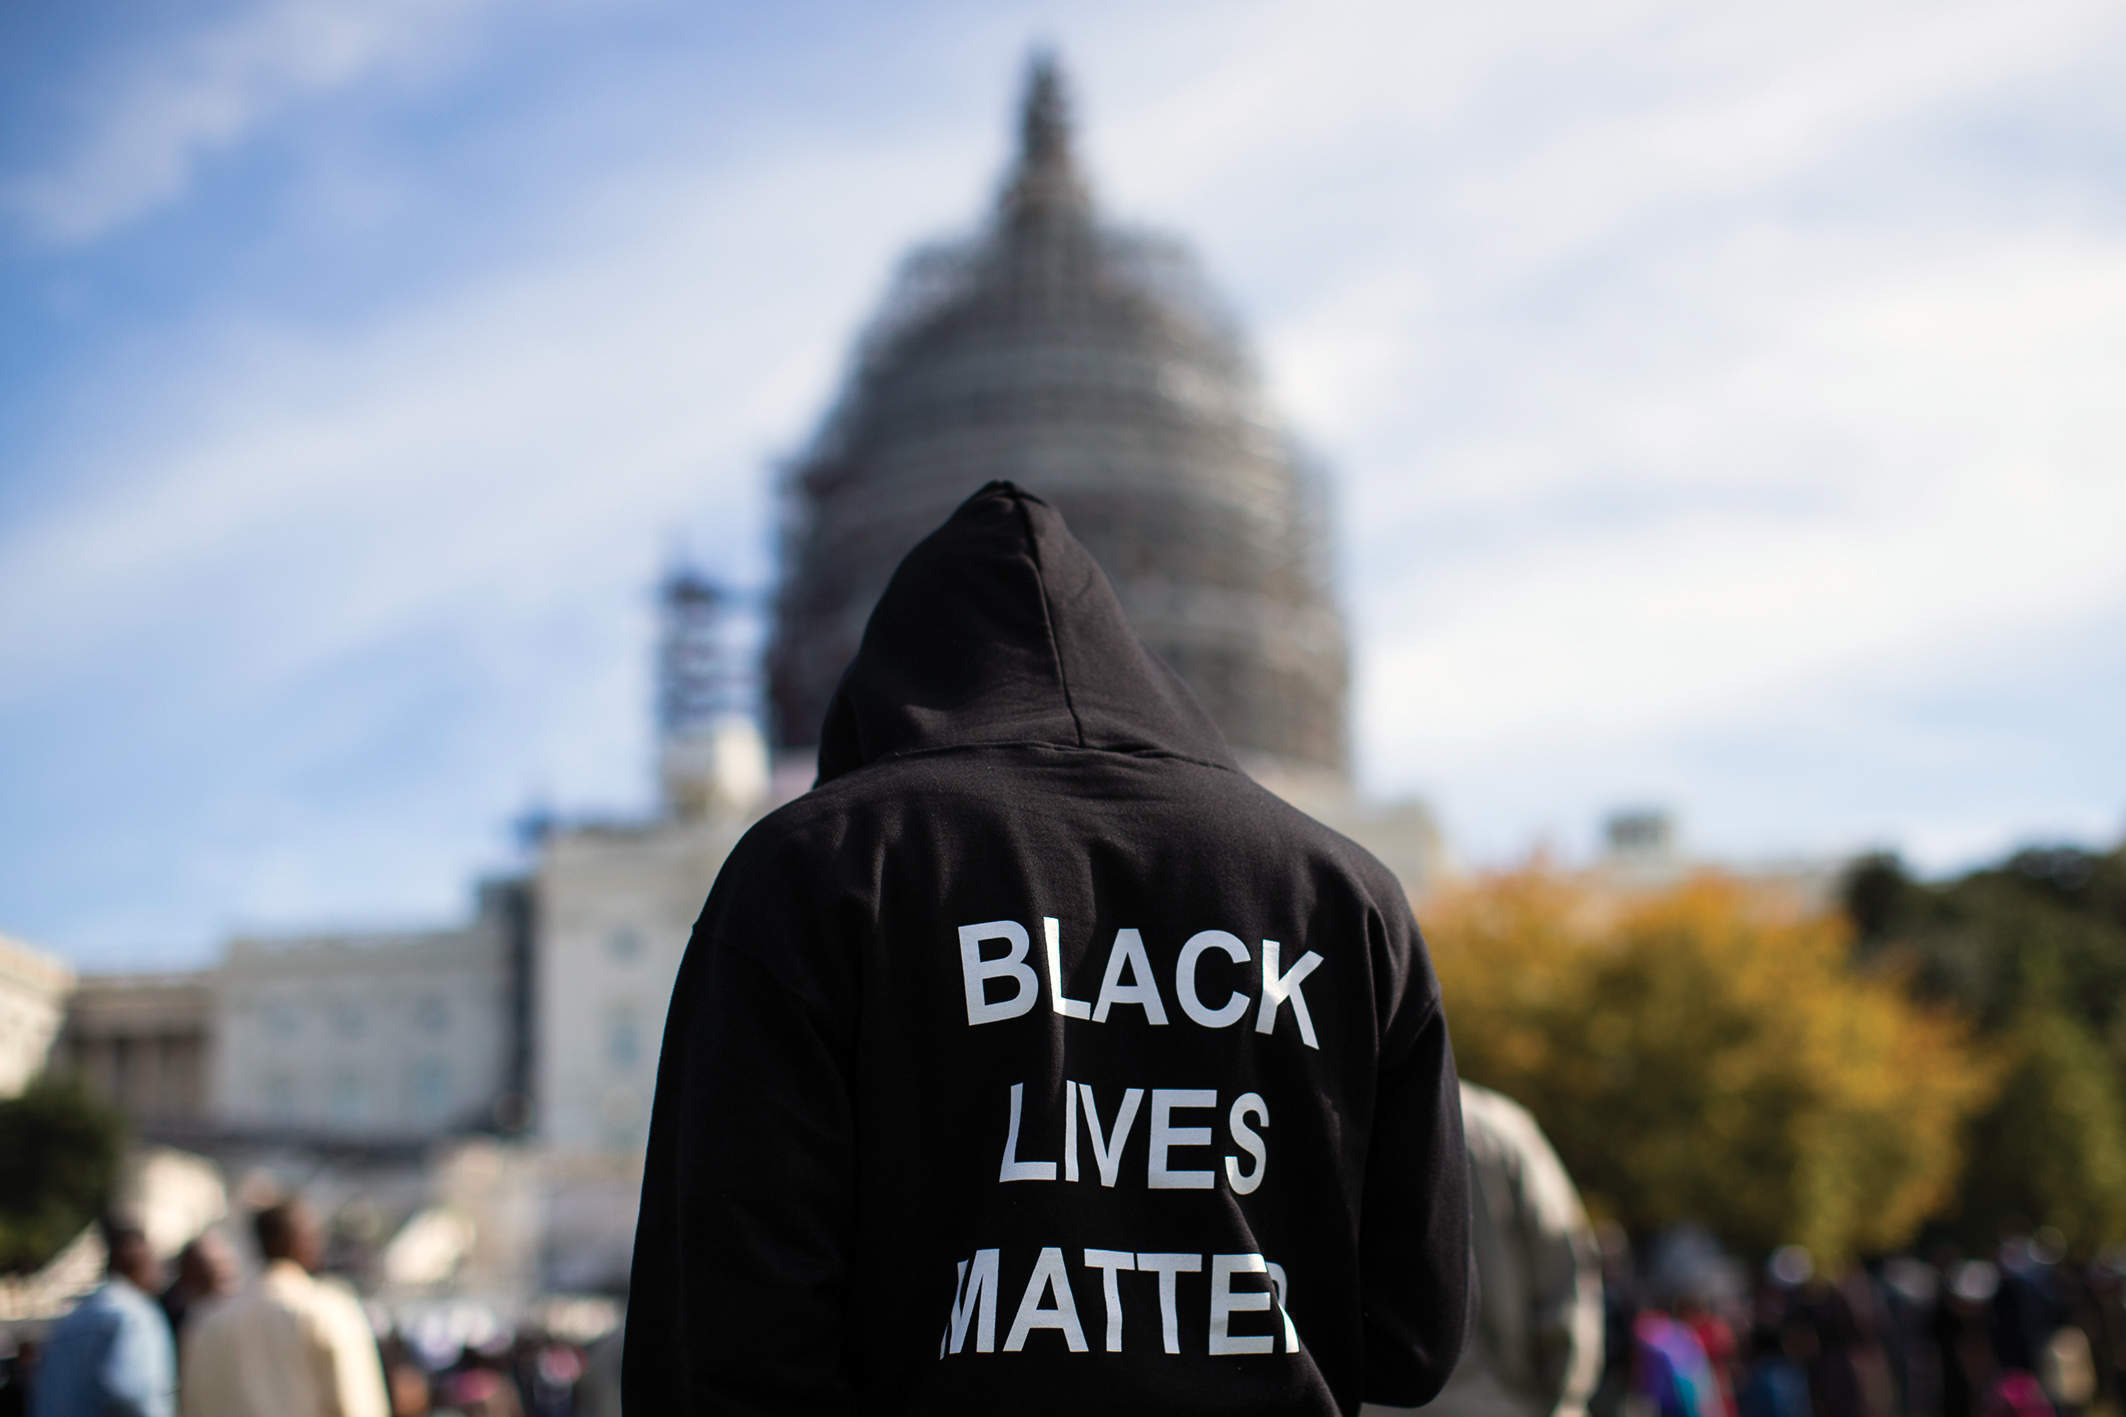 In 2014, a white cop shot a black teenager – and Black Lives Matter came to life